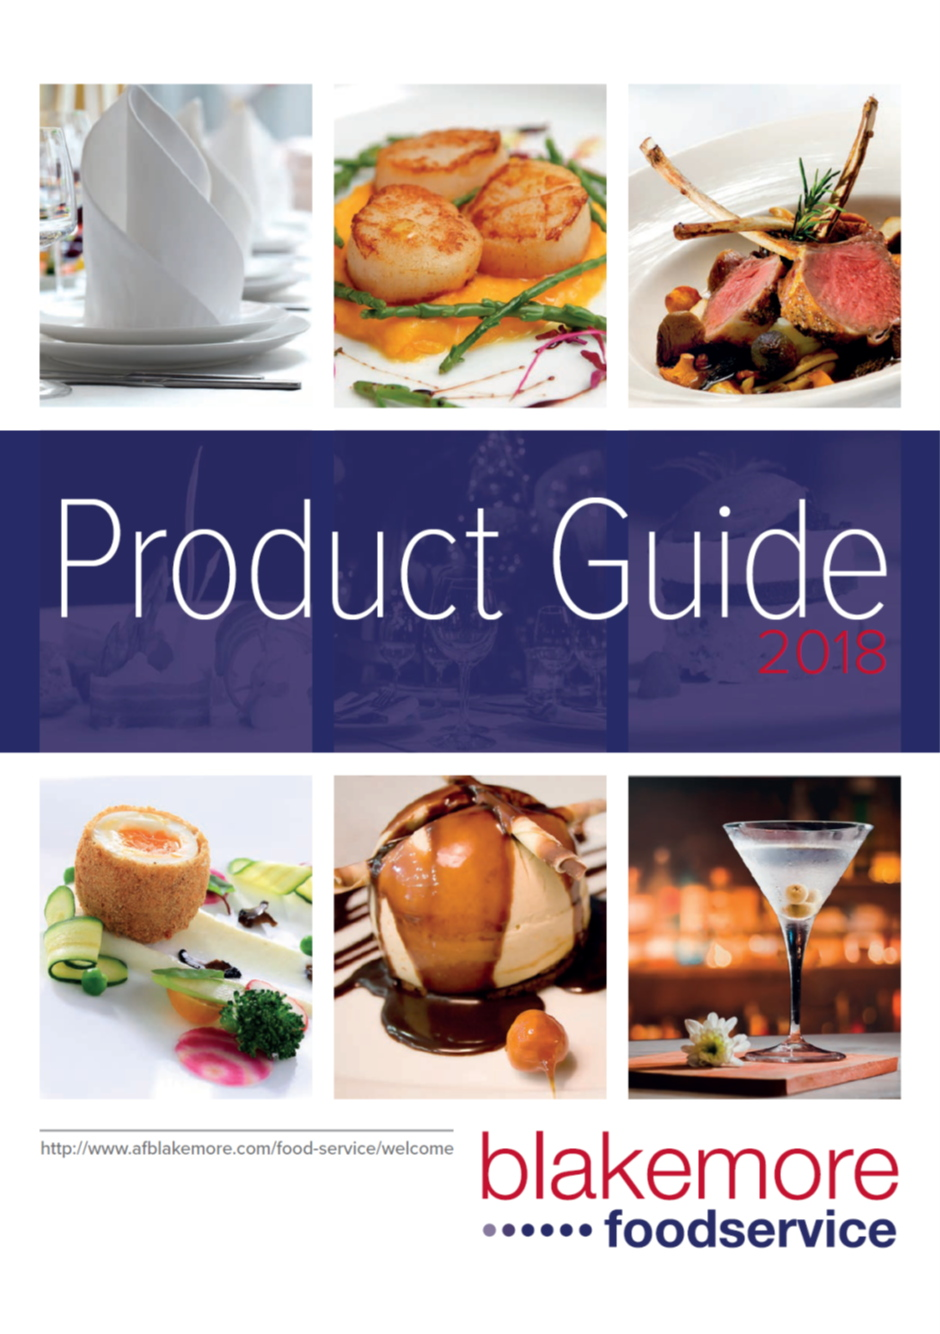 Blakemore_Foodservice_Product_Guide_2018